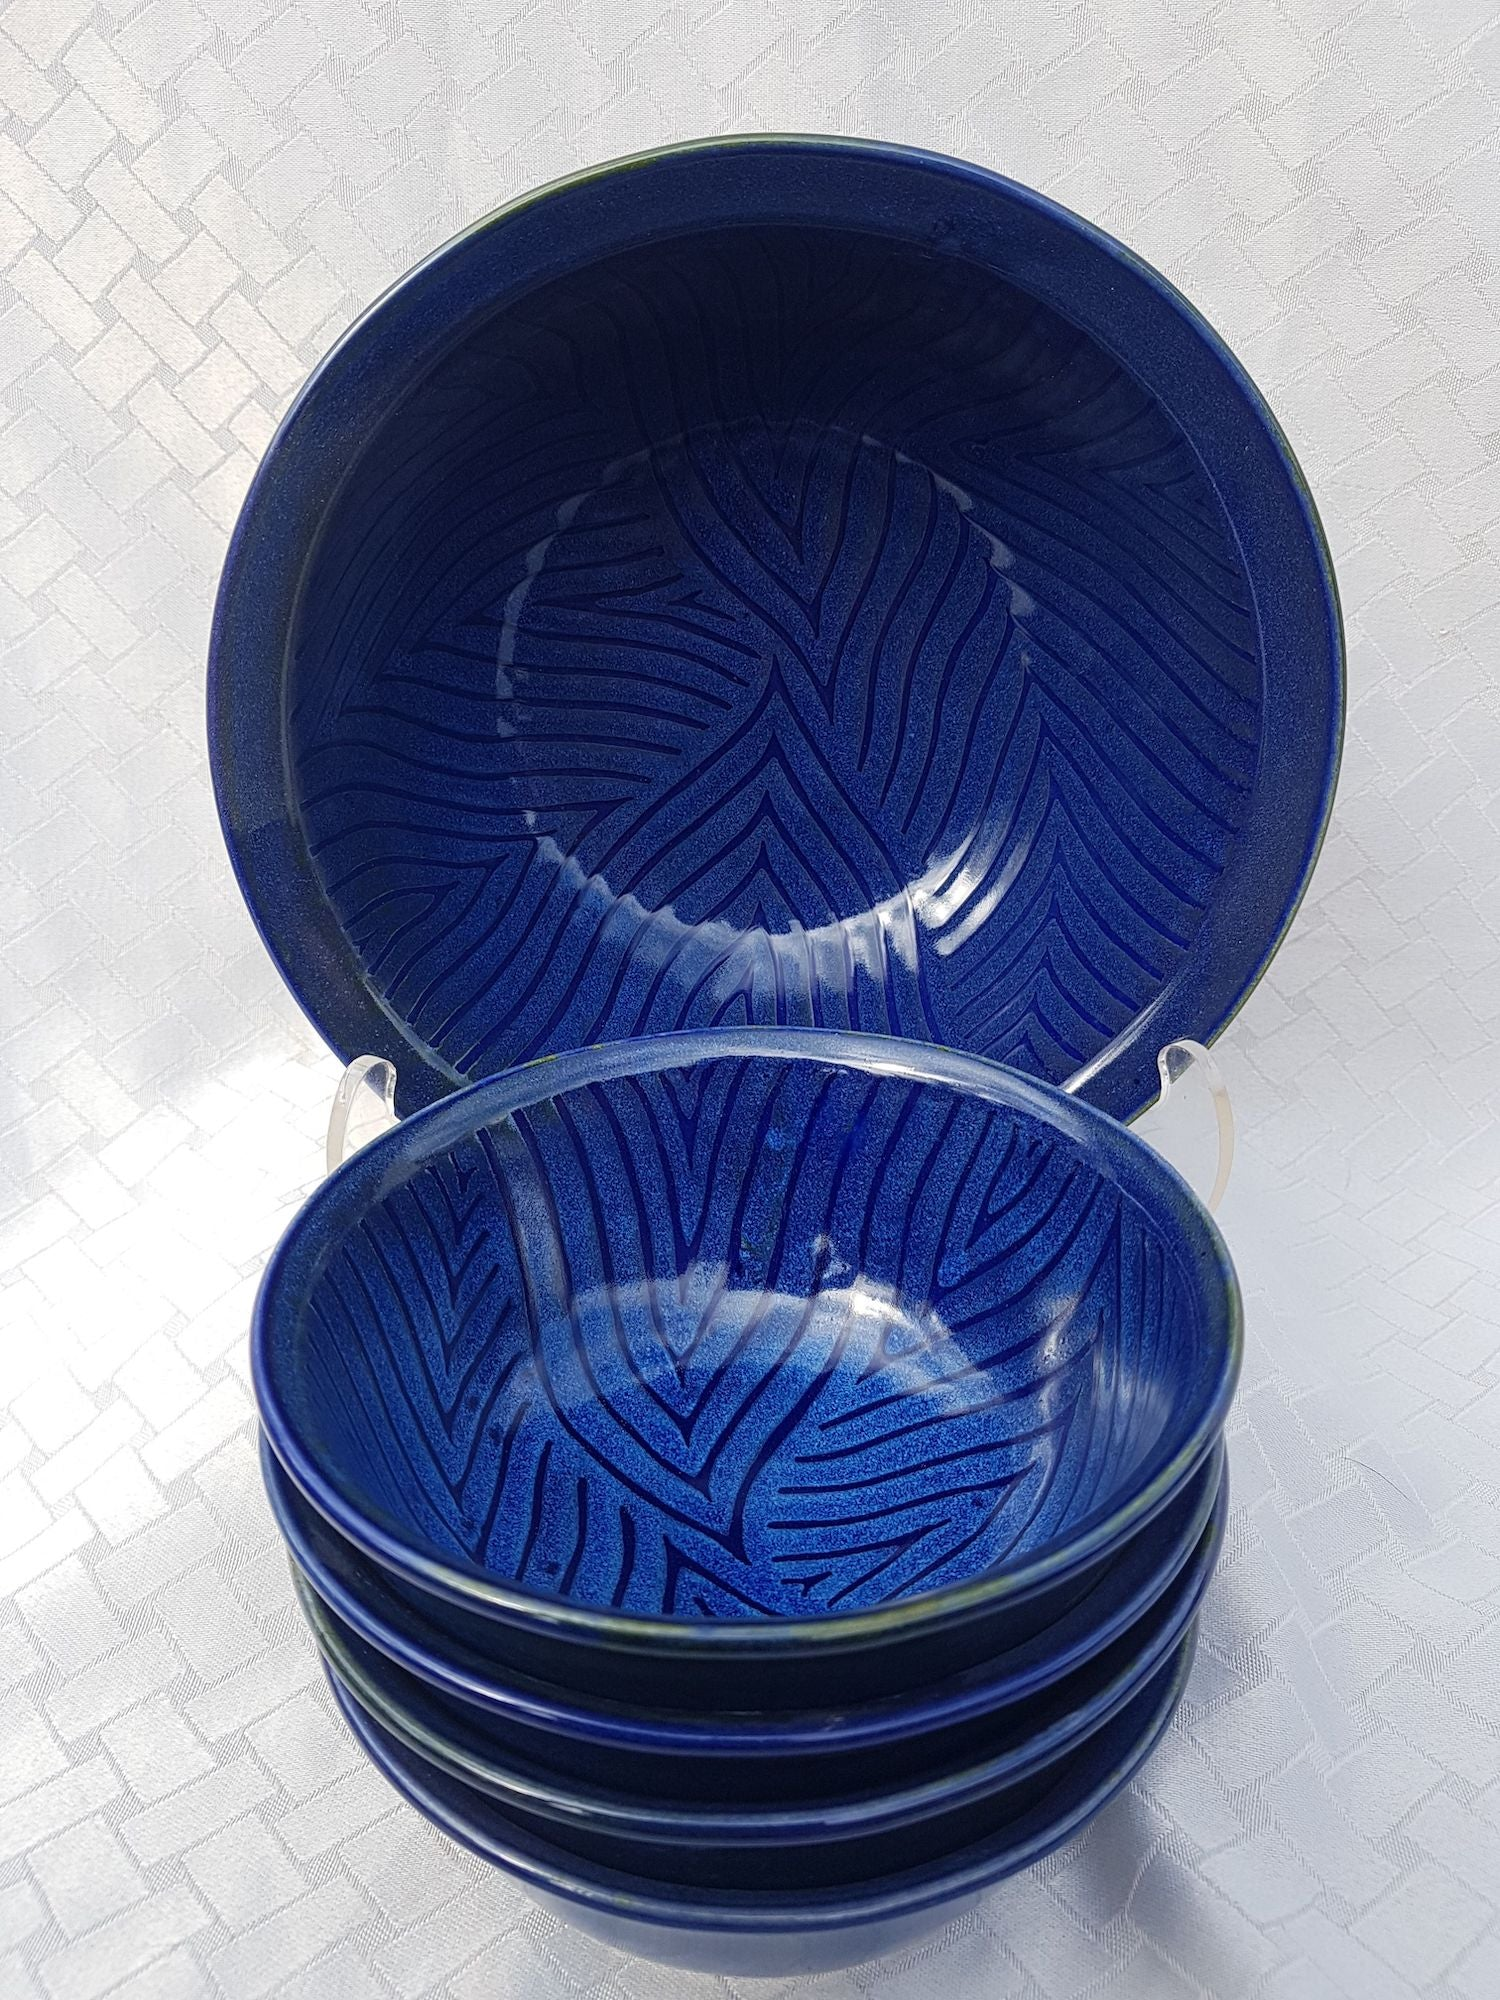 Pemberton Sky:  A hand-painted leafing pattern with a textured finish in a two toned blue glossy finish